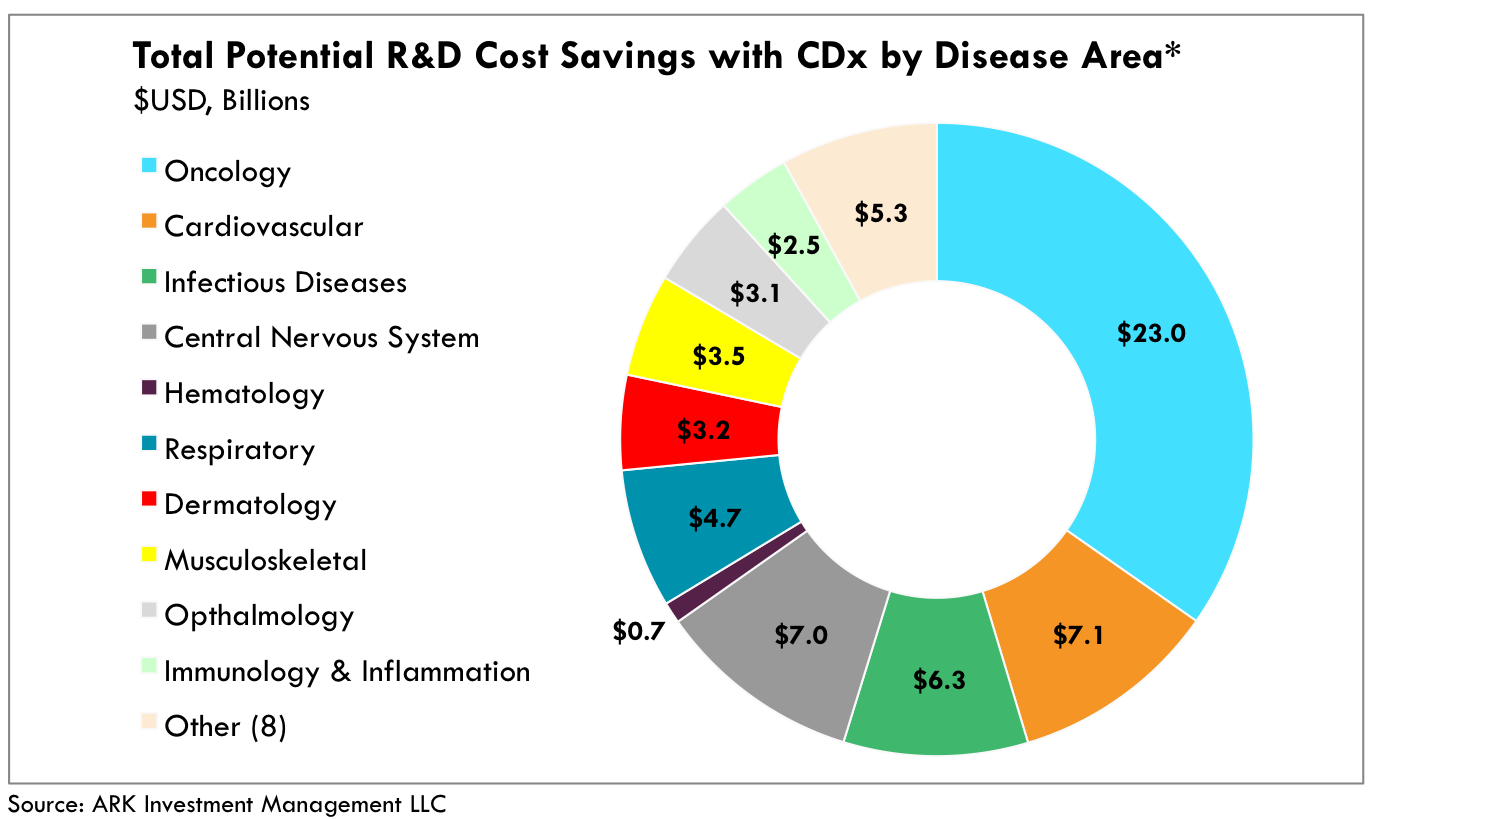 R&D Costs, Companion Diagnostics, cdx, drug approval process, health care, diagnostics, ark research, healthcare innovation, invest in healthcare, ark invest